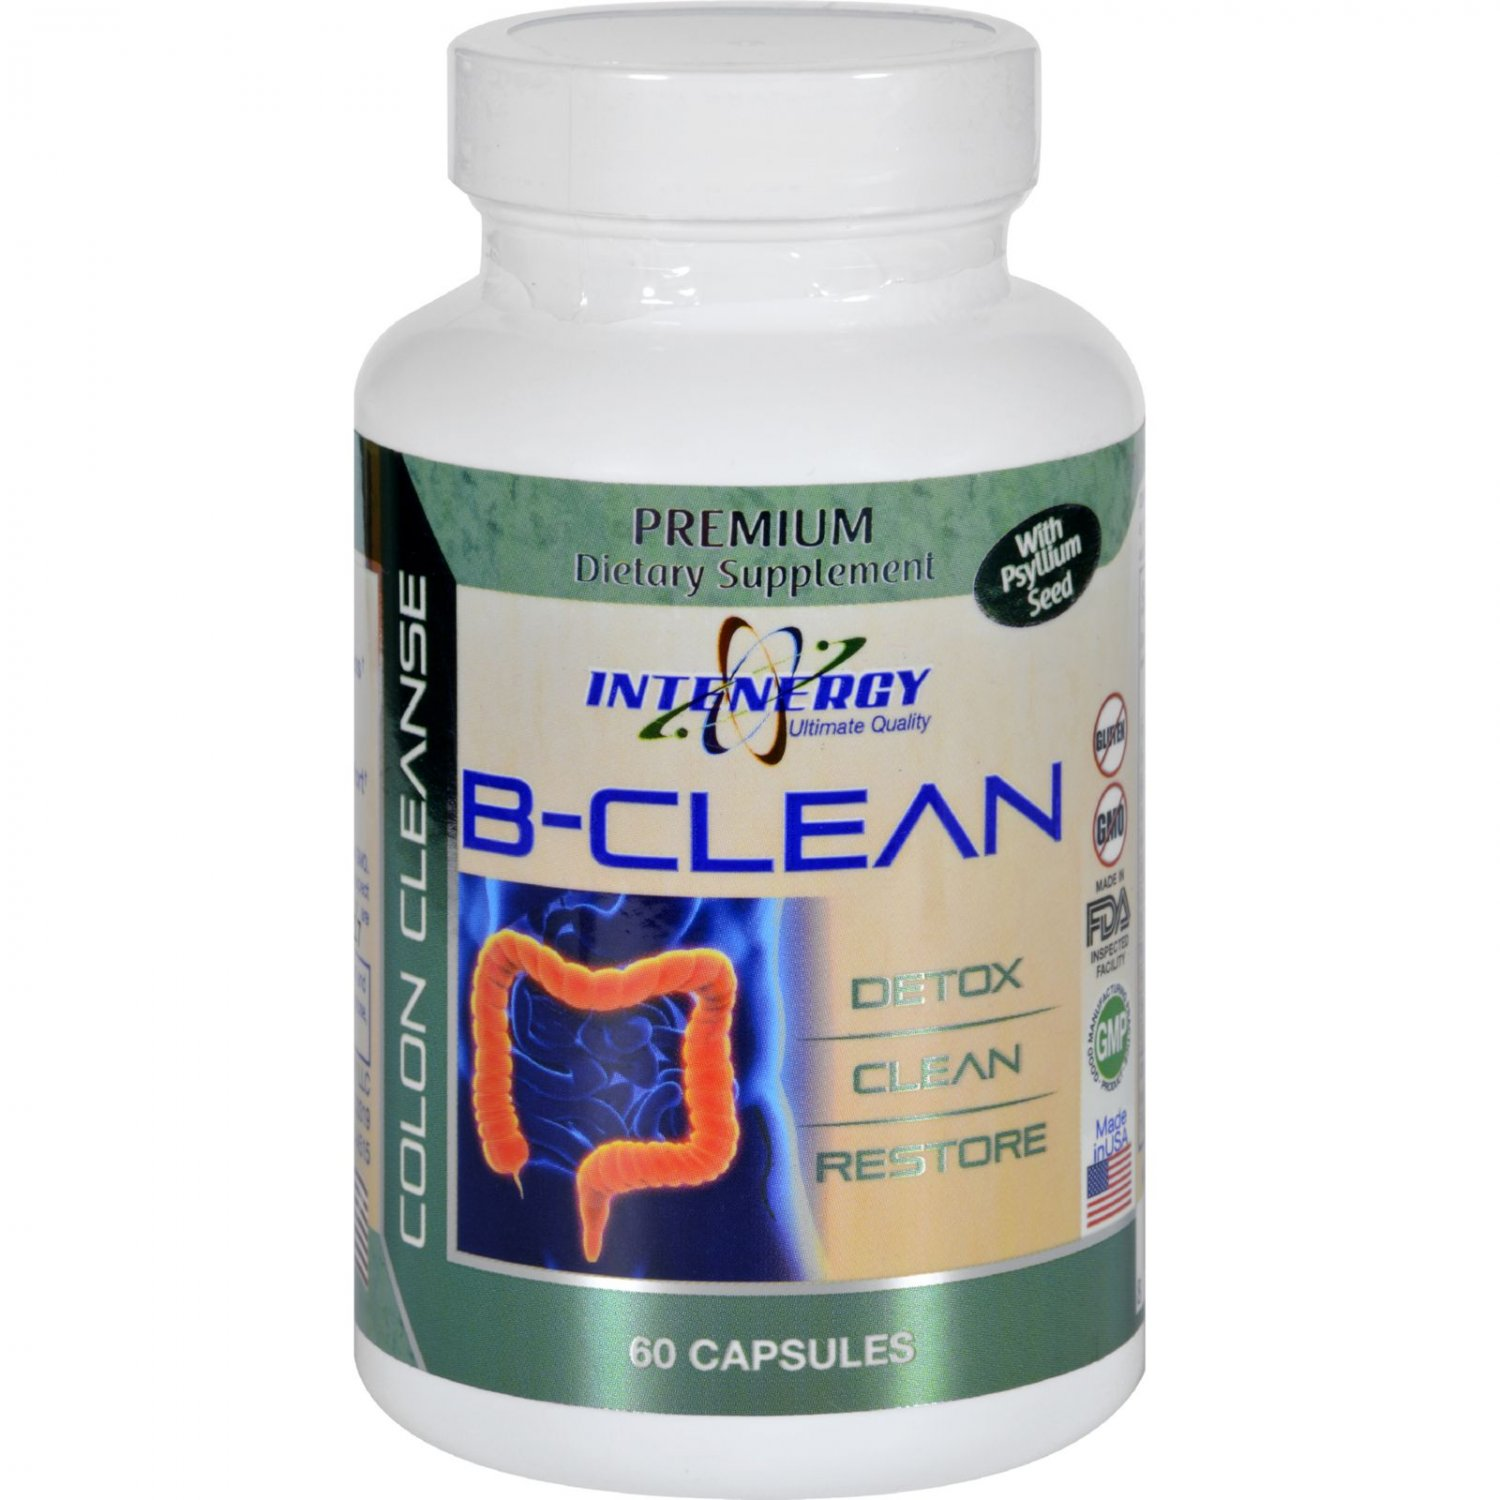 Intenergy B-Clean - with Psyllium Seed - 60 Capsules